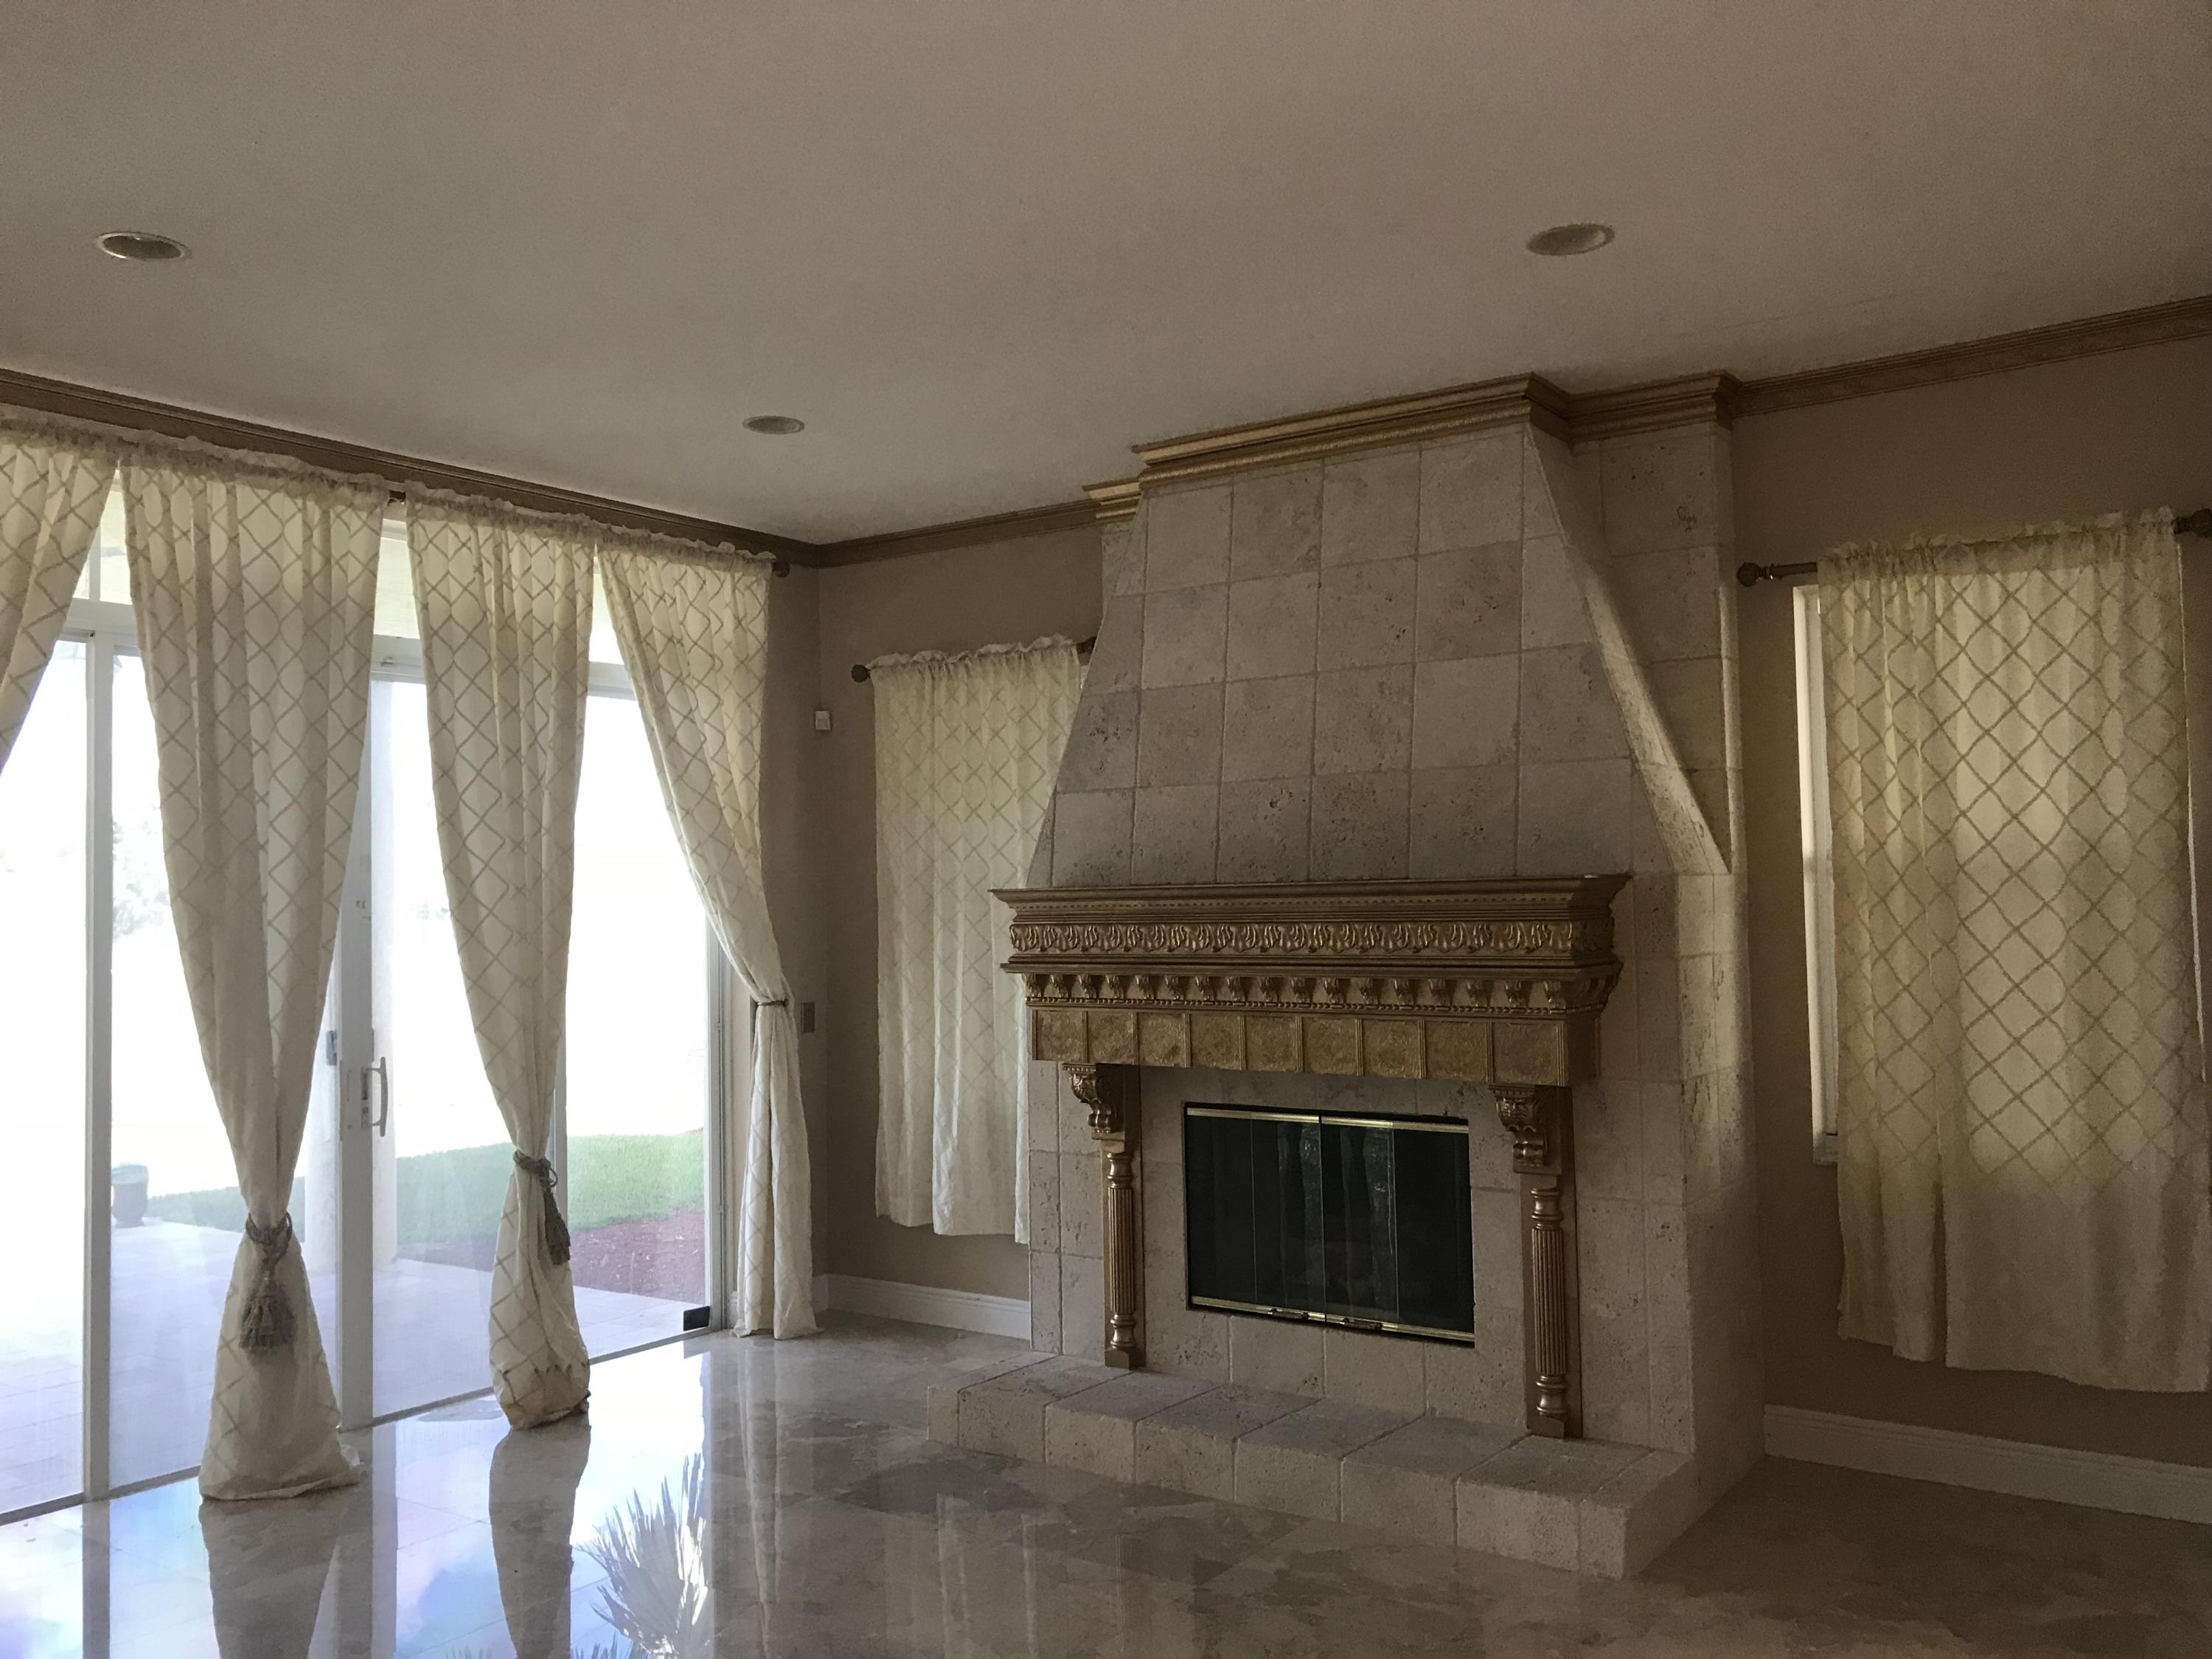 2128 Bellcrest Court Court Royal Palm Beach, FL 33411 small photo 12